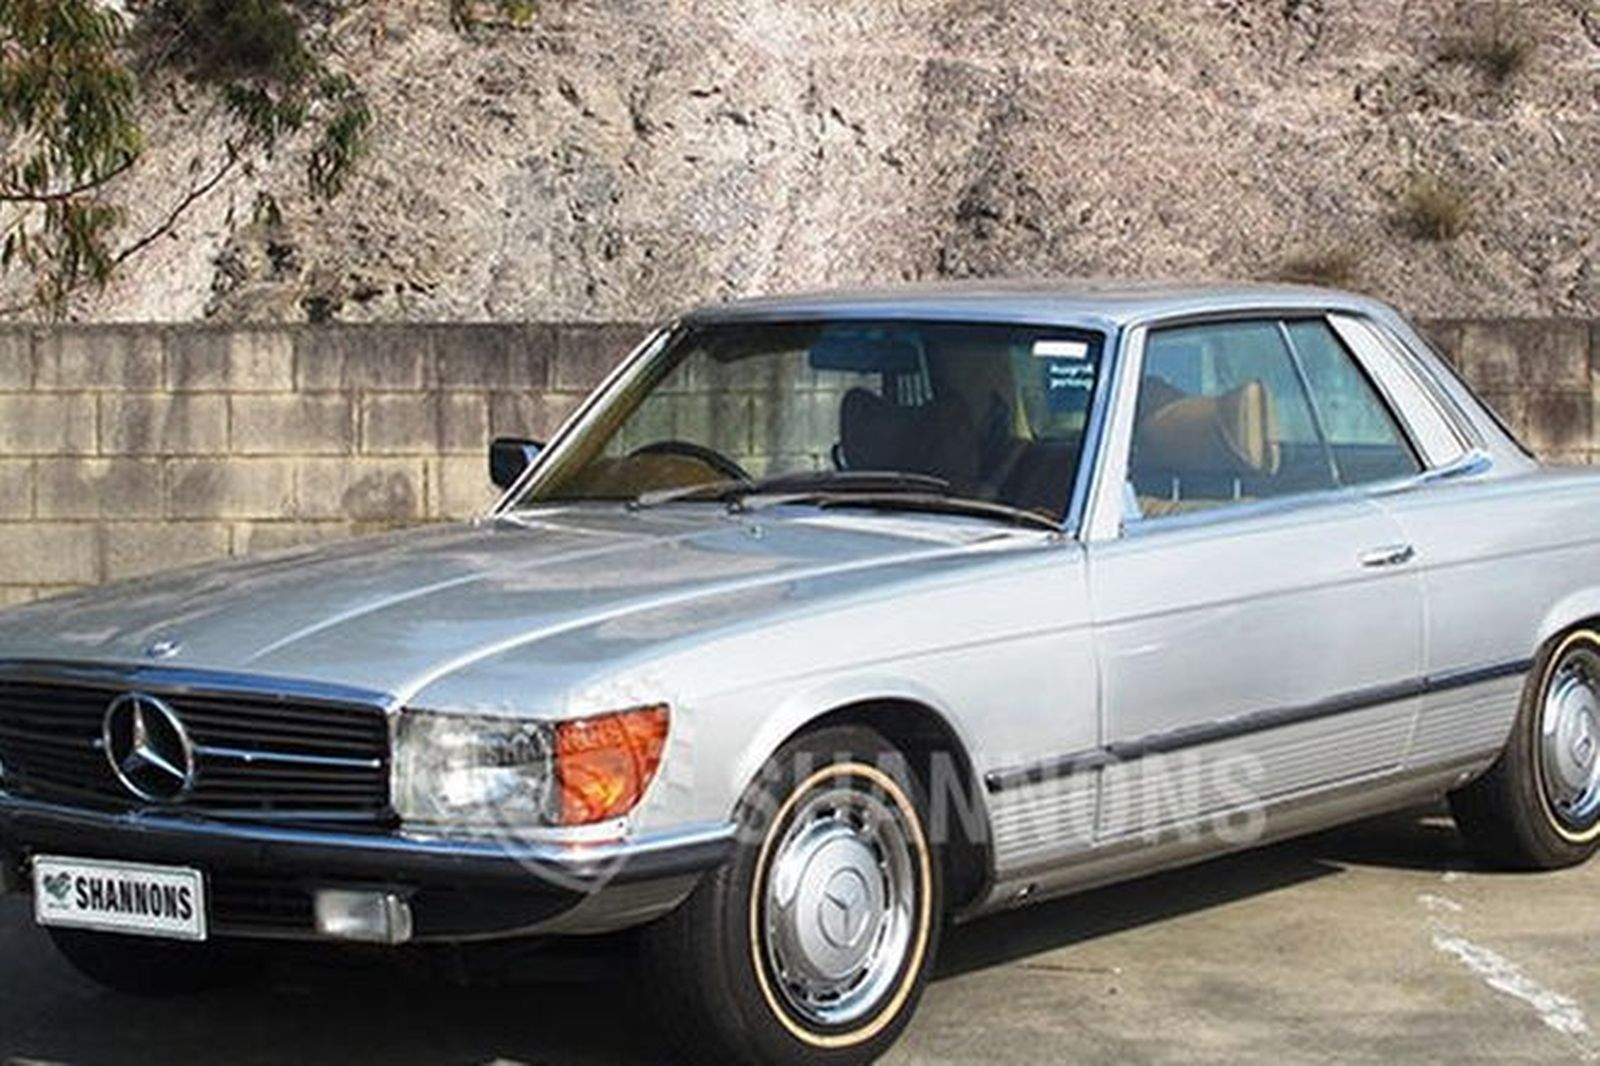 sold mercedes benz 450slc coupe auctions lot 22 shannons. Black Bedroom Furniture Sets. Home Design Ideas